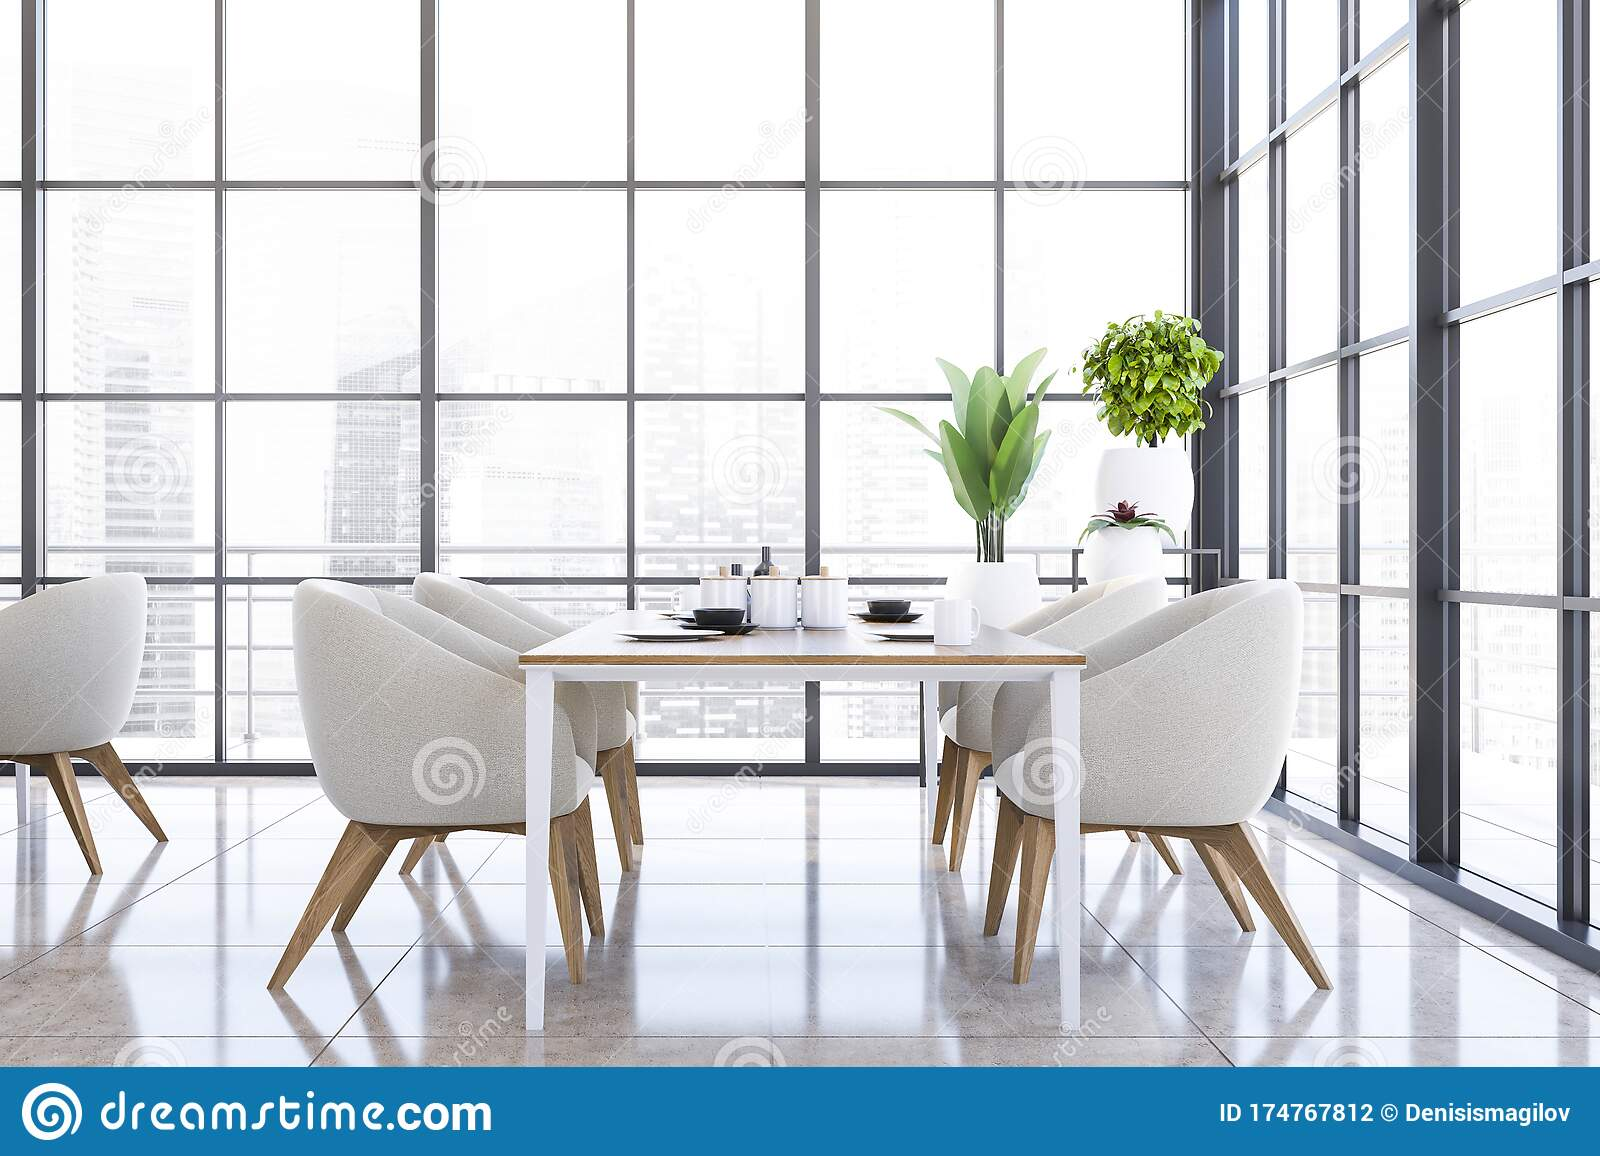 Picture of: Panoramic White Armchairs Dining Room Interior Stock Illustration Illustration Of Lamp Luxury 174767812